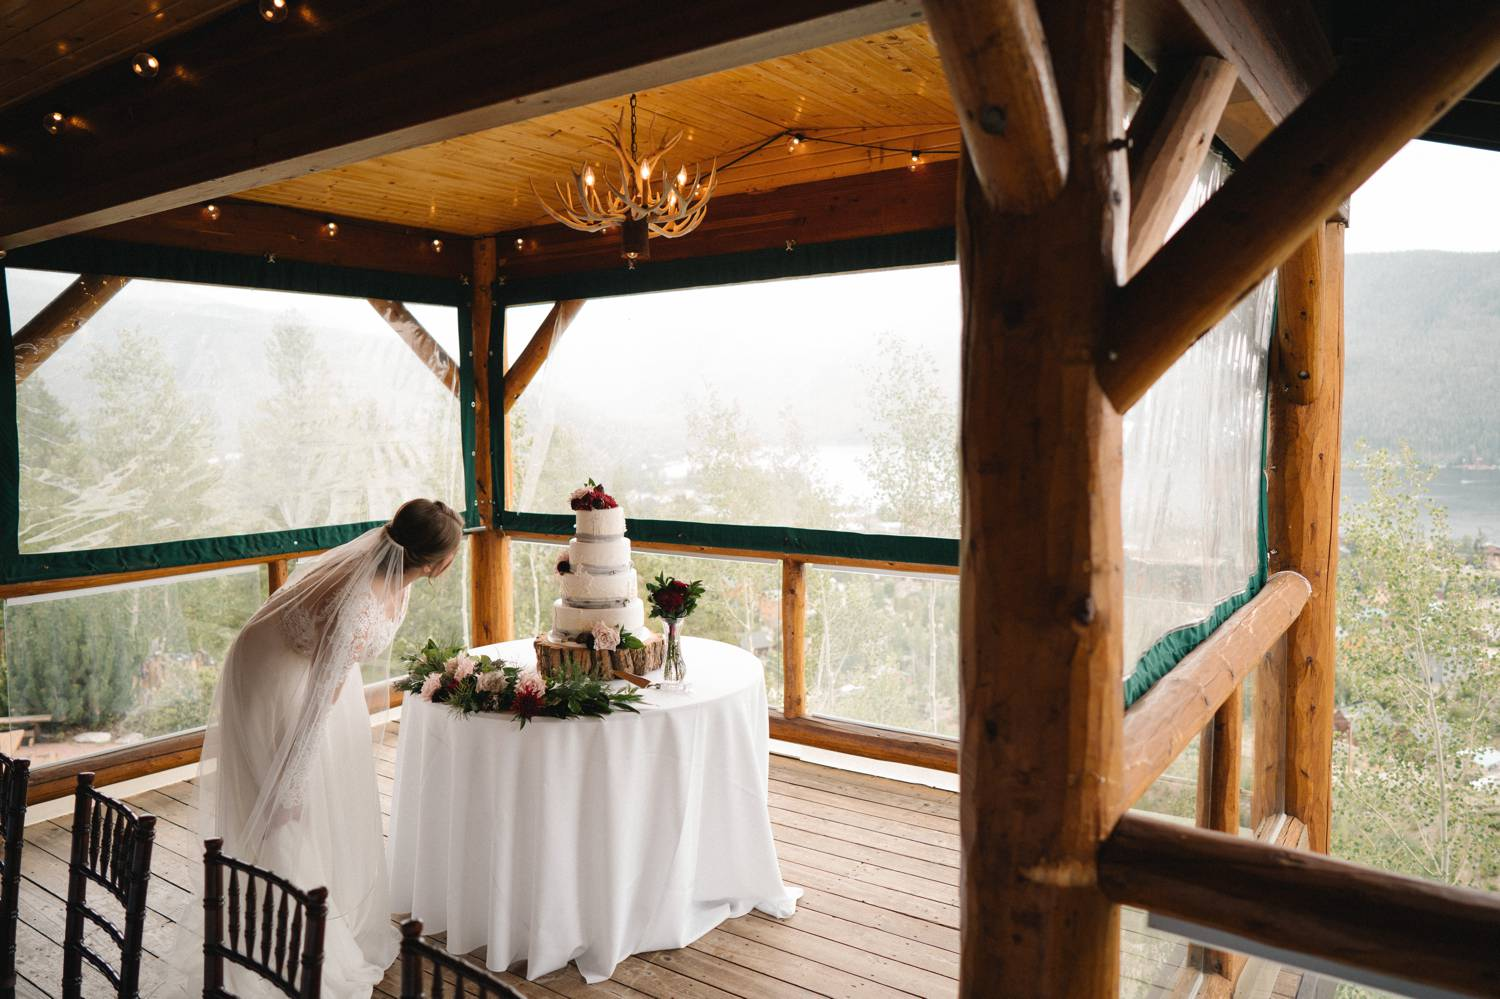 Customer Loyalty: By Nick Sparks, a bride bends forward to get a closer look at her wedding cake.